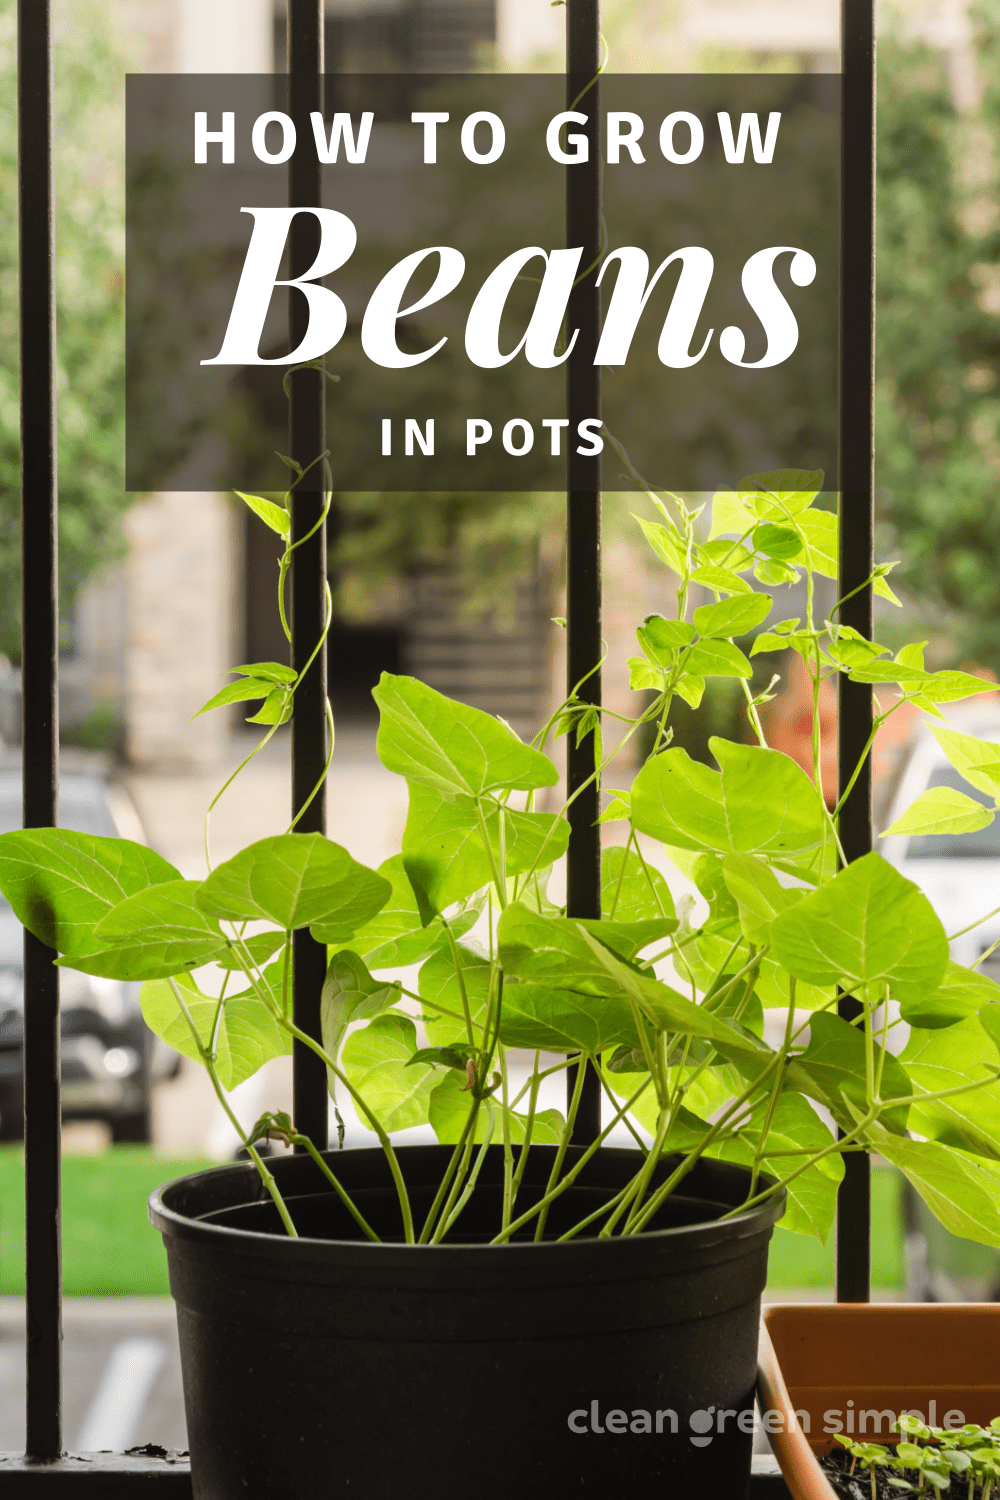 How to Grow Beans in Pots